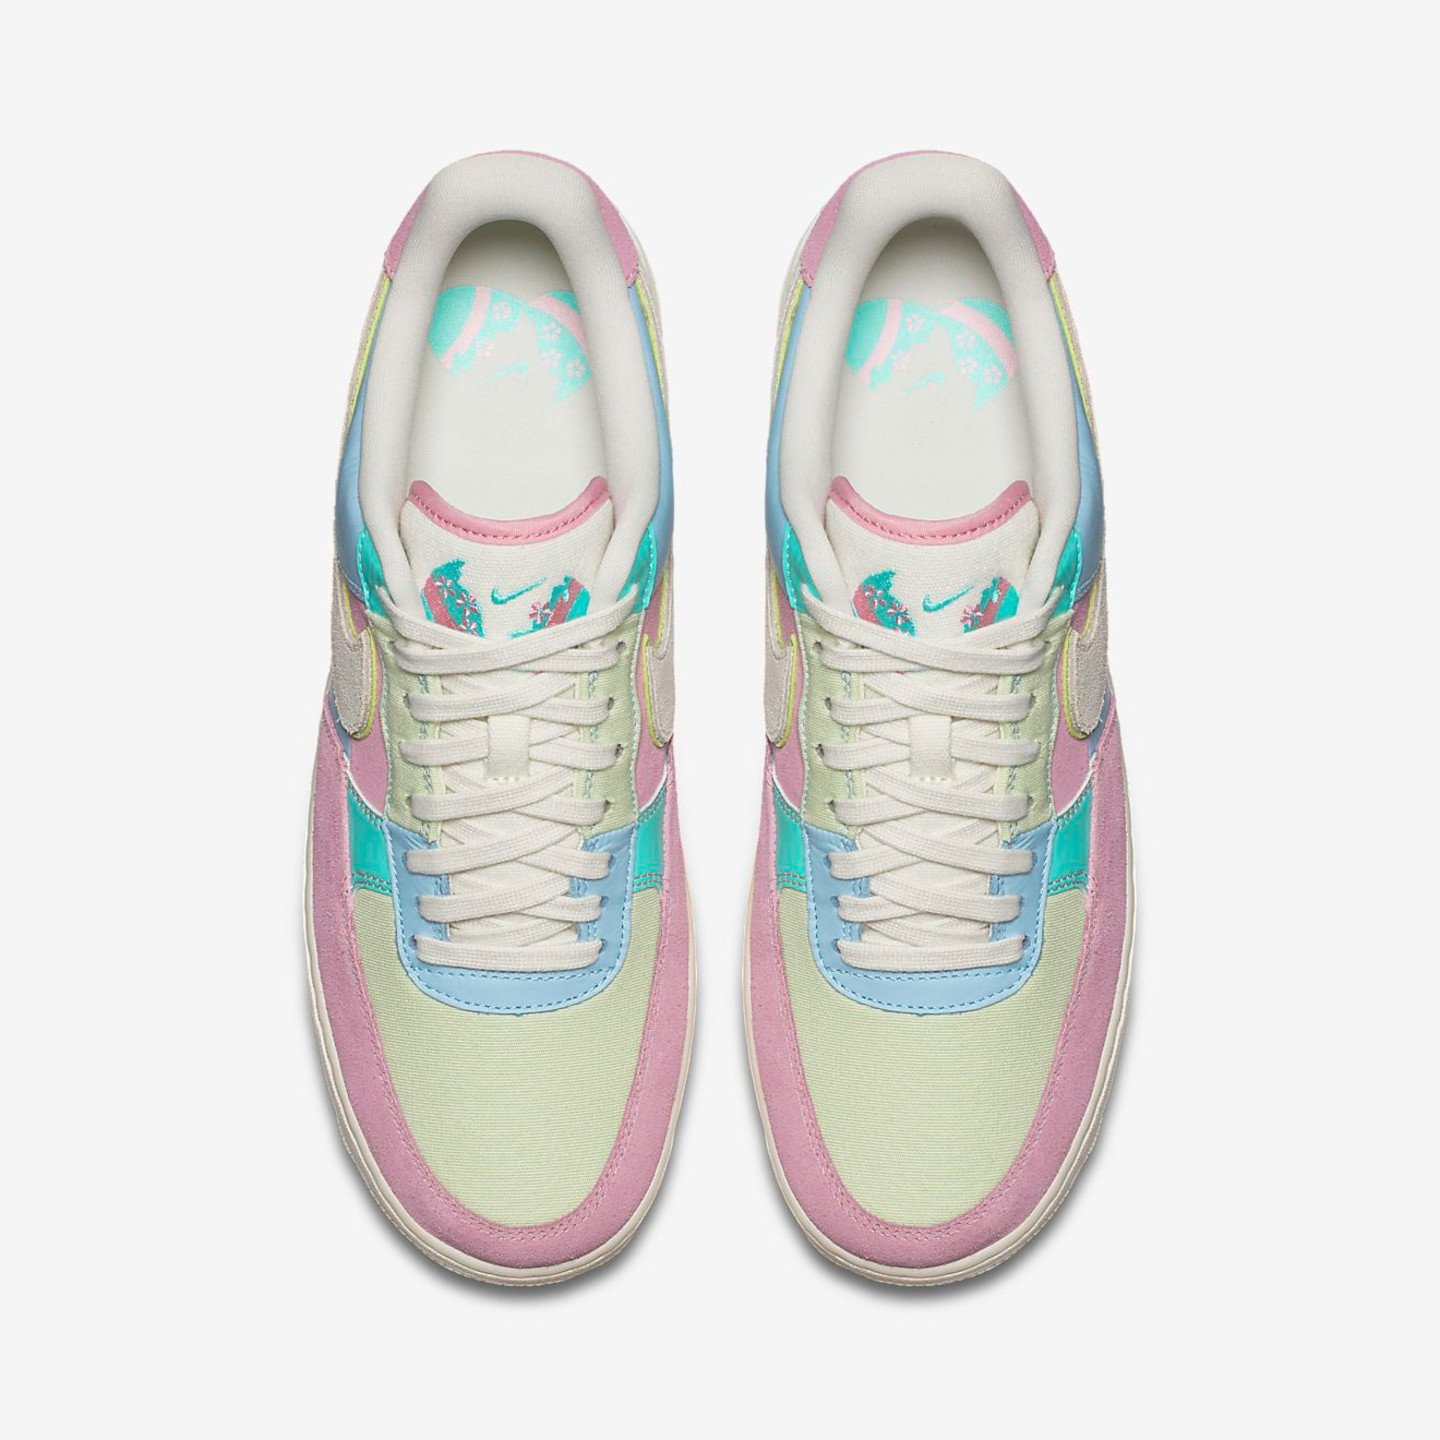 Nike Air Force 1 '07 QS 'Easter Pack' Ice Blue / Sail / Hyper Turquoise / Barely Volt AH8462-400